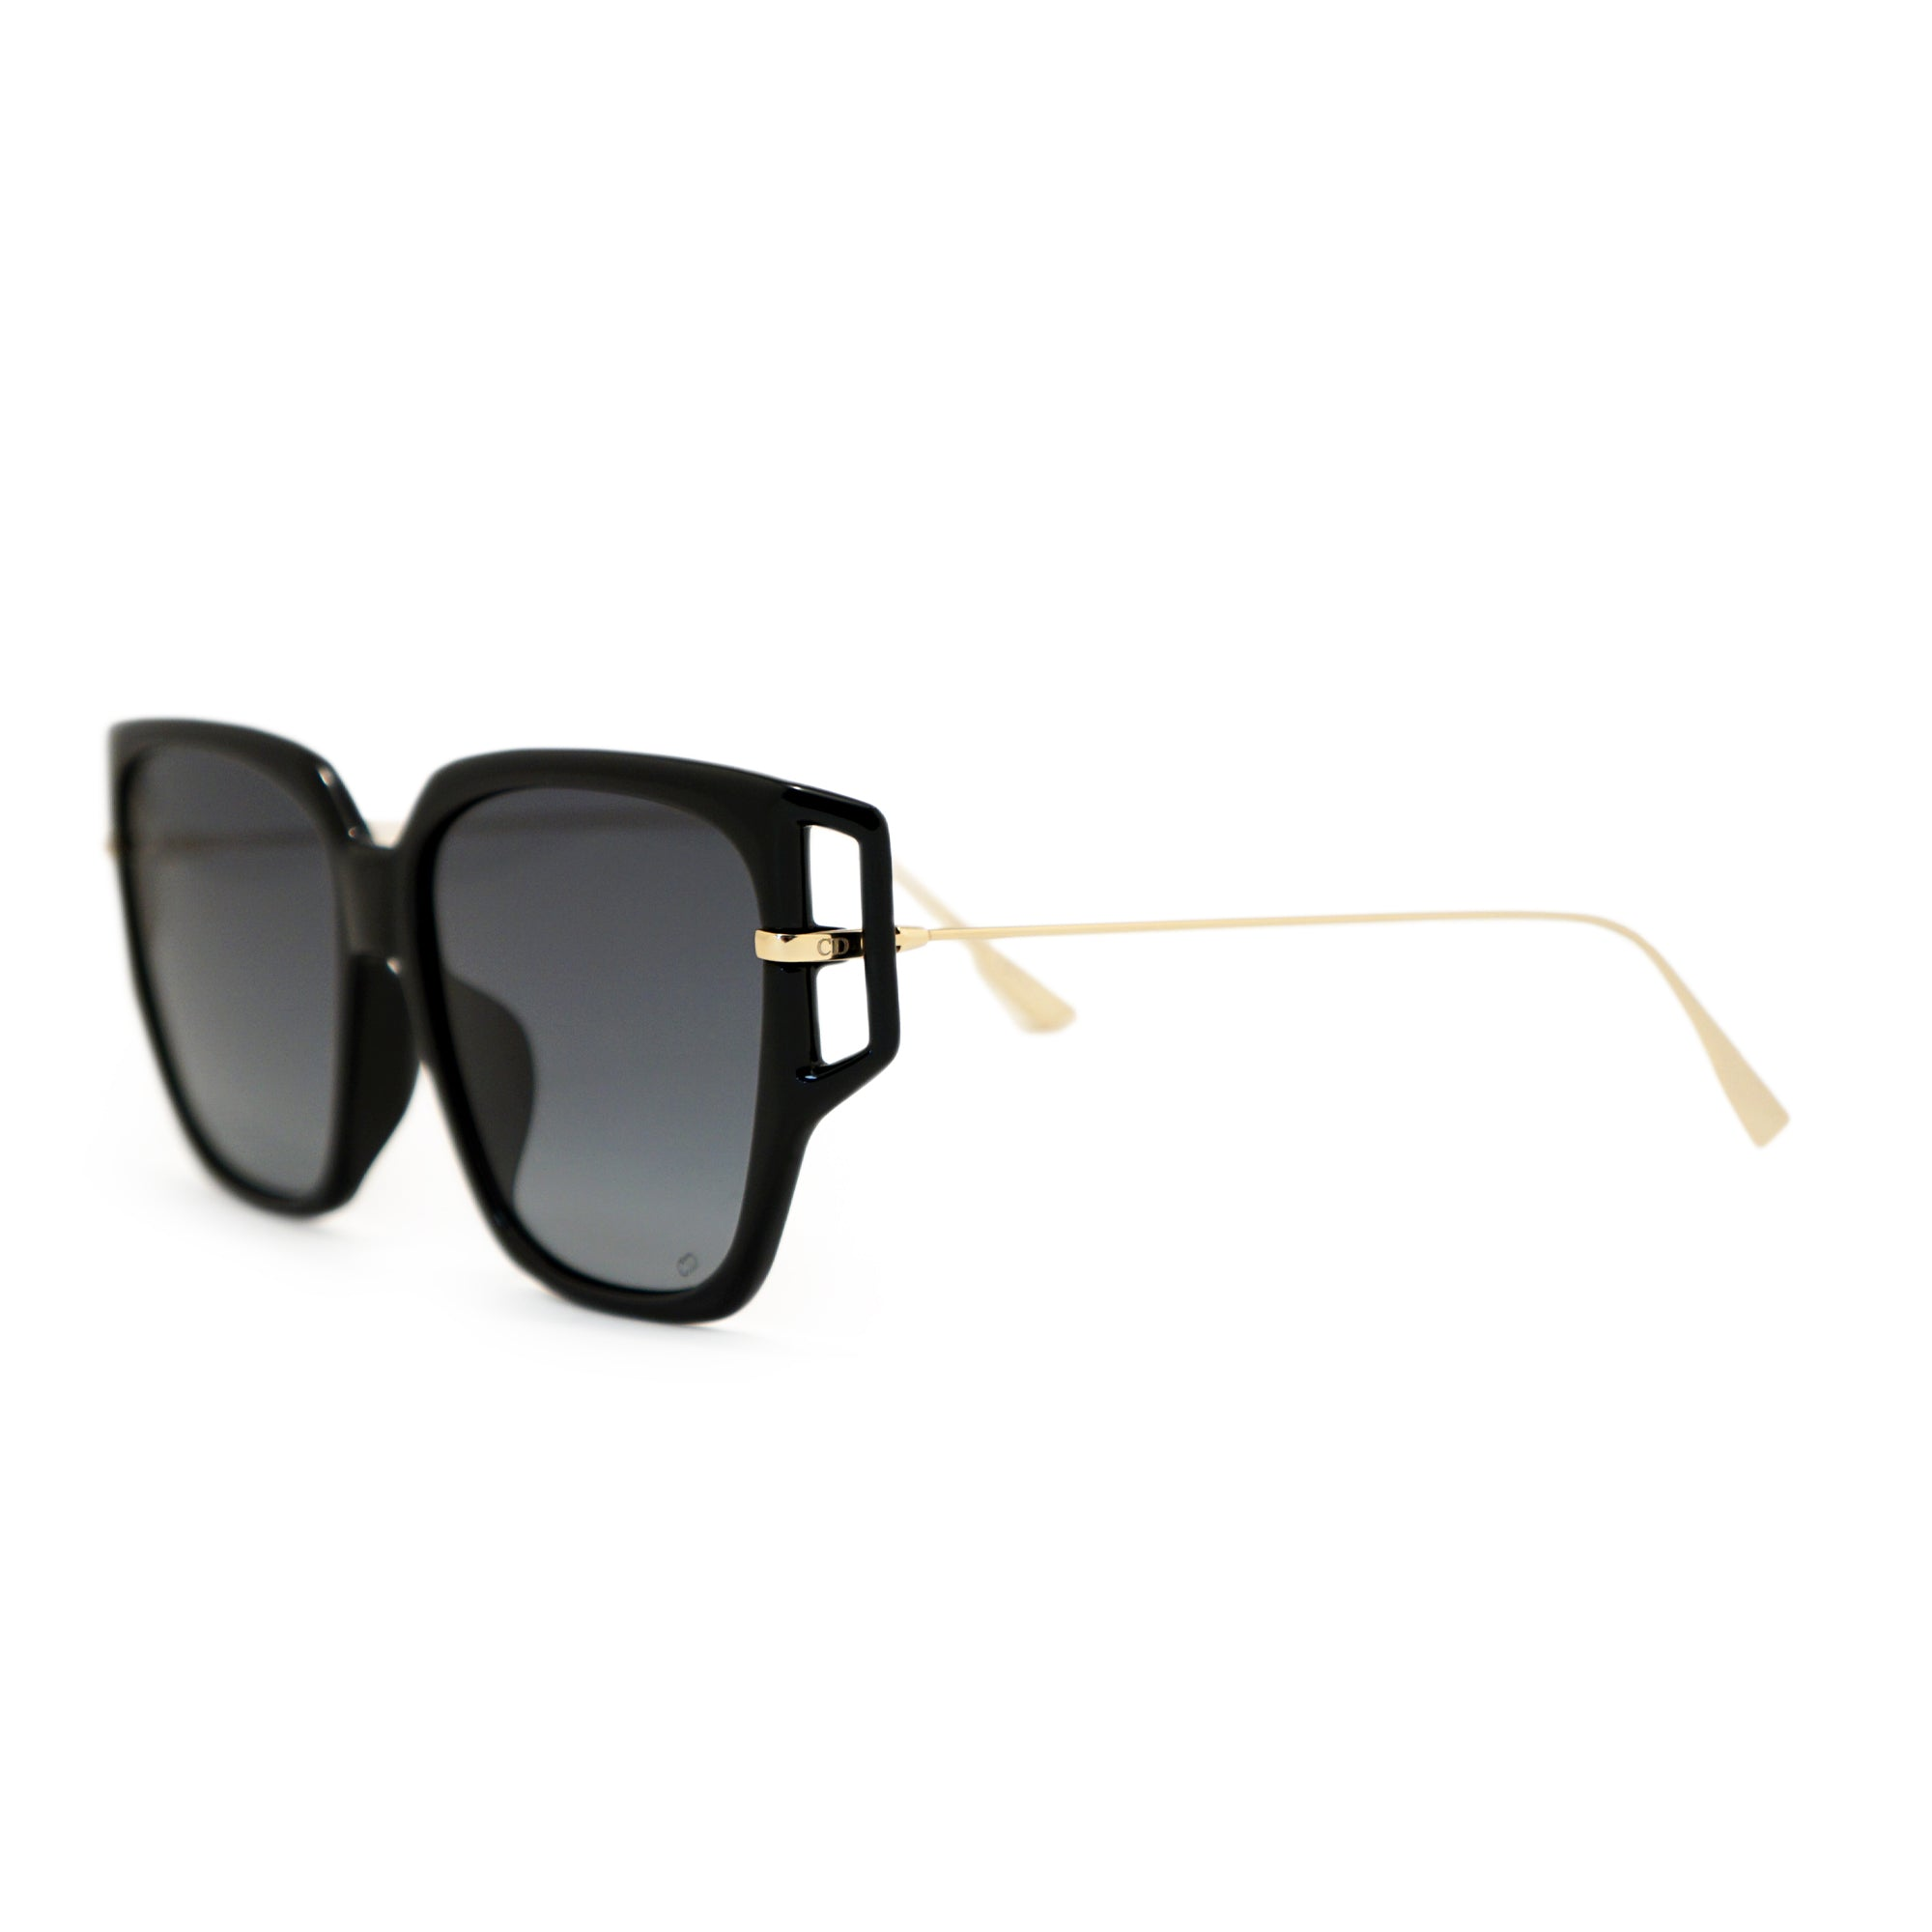 Christian Dior Square Sunglasses Direction 3F 8071I 58